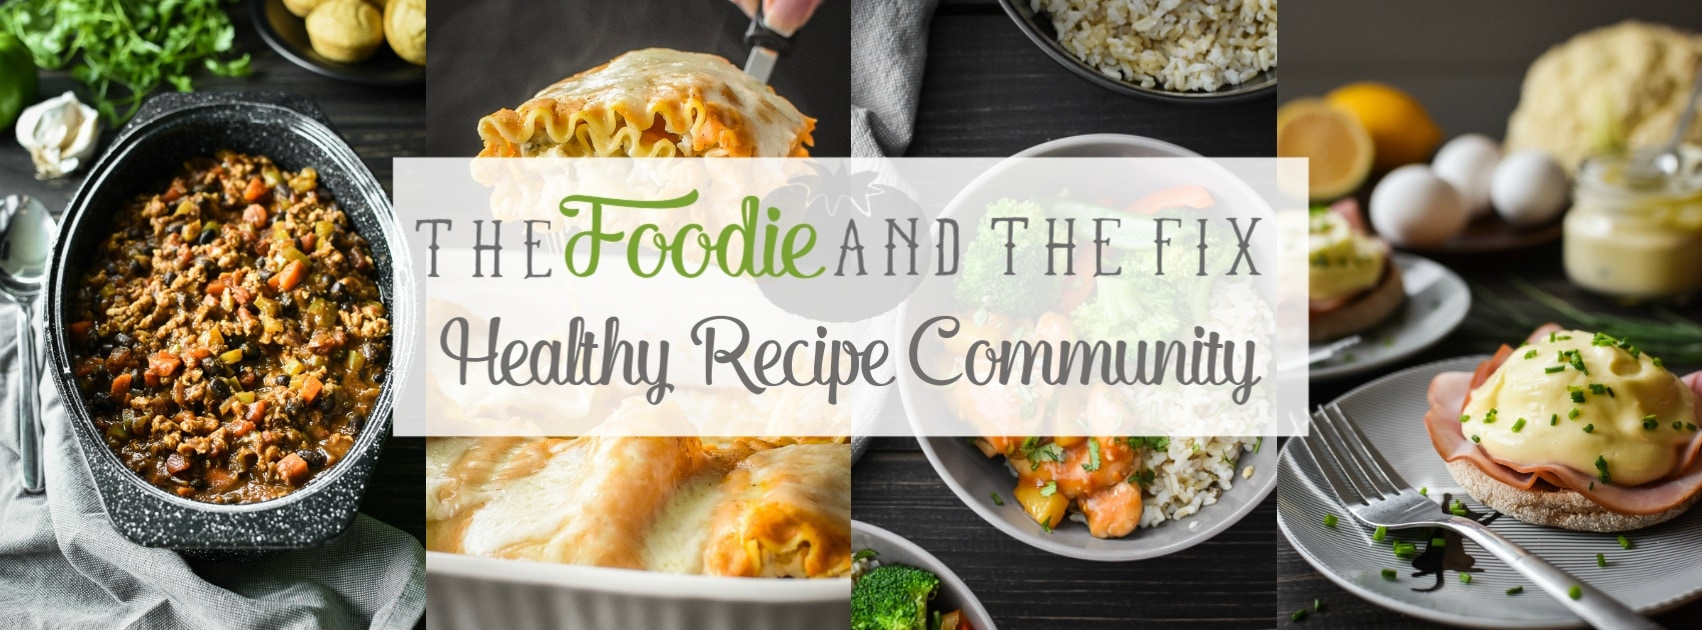 Join the brand-new healthy eating Facebook Group for Foodie and The Fix readers! Get healthy eating and healthy cooking tips, recipes and more!